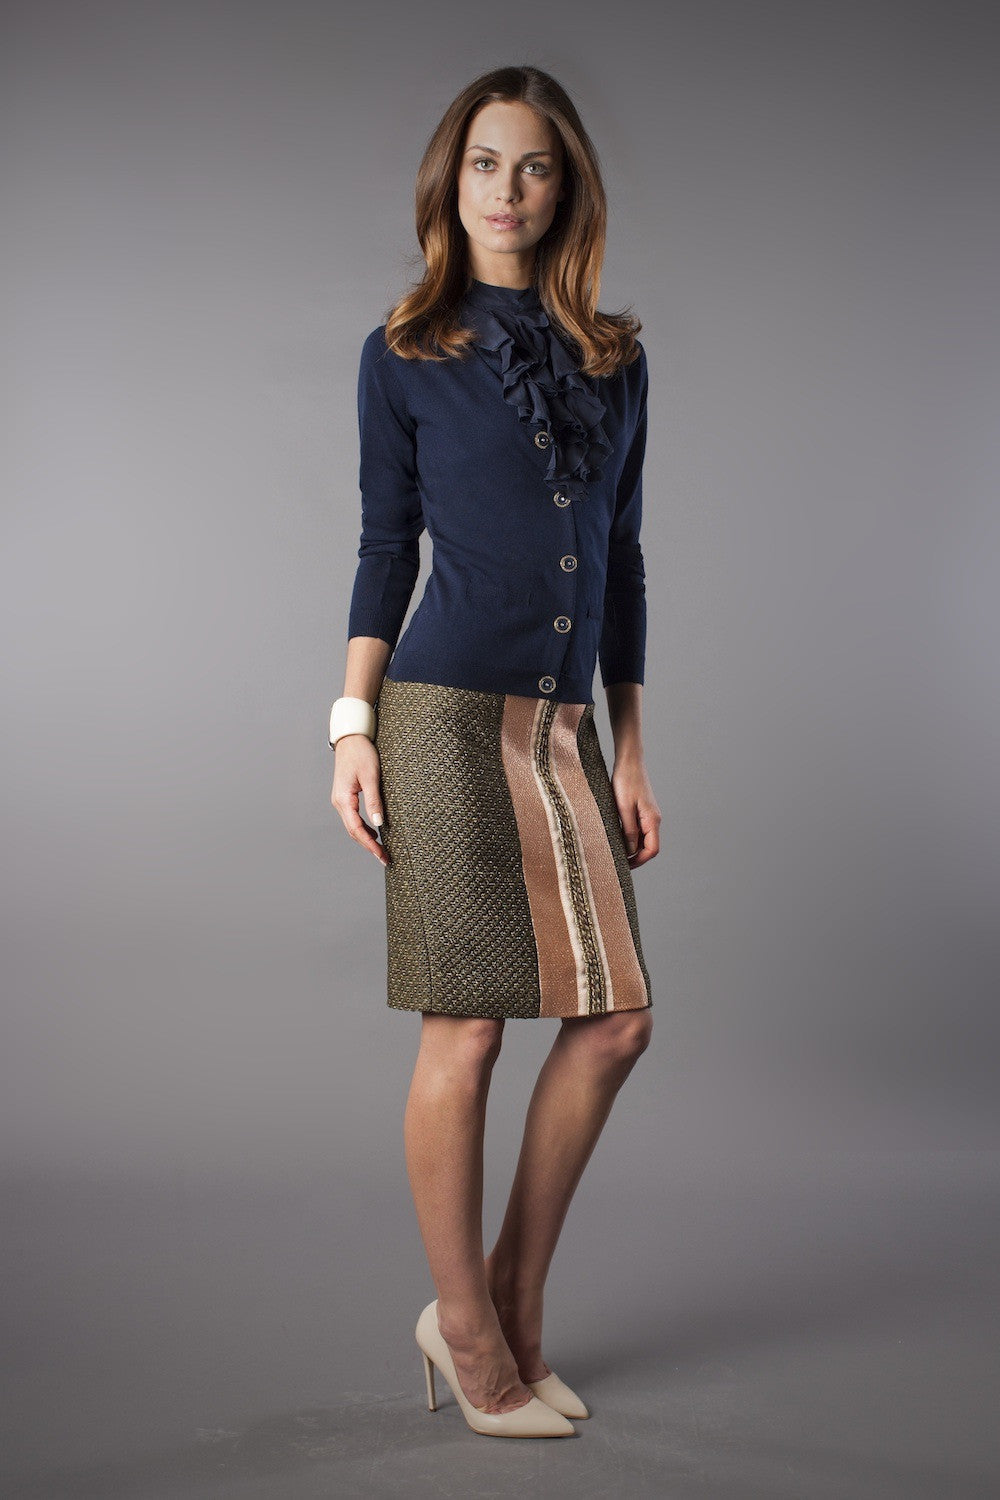 Celine Skirt - Olive - Womenswear Outlet - Madderson London